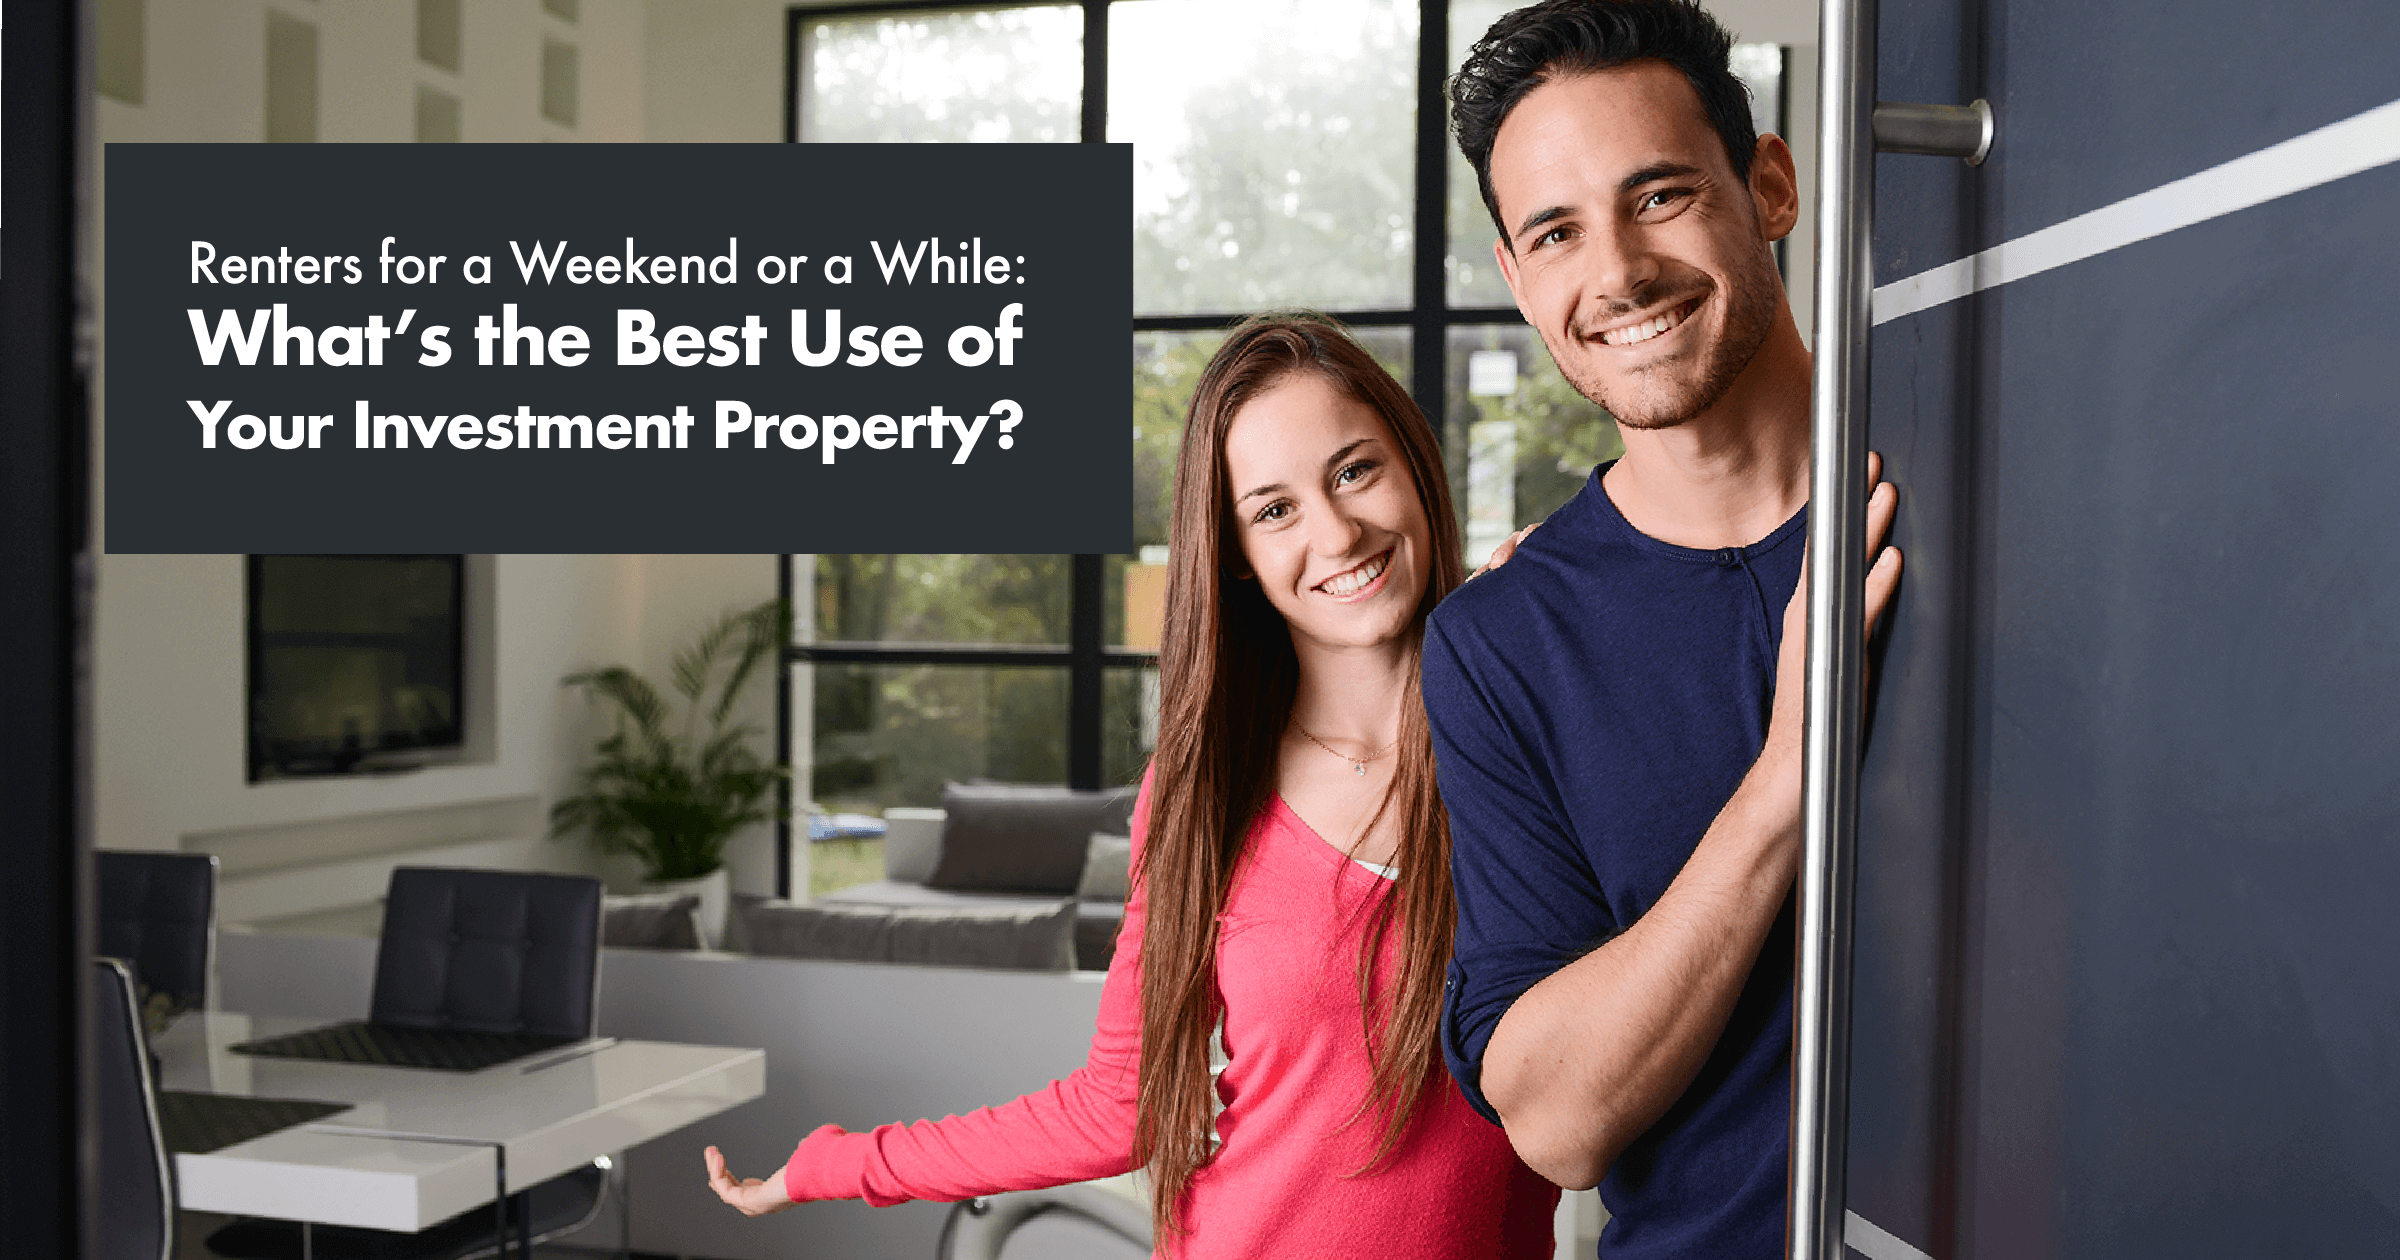 What's the Best Use of Your Investment Property